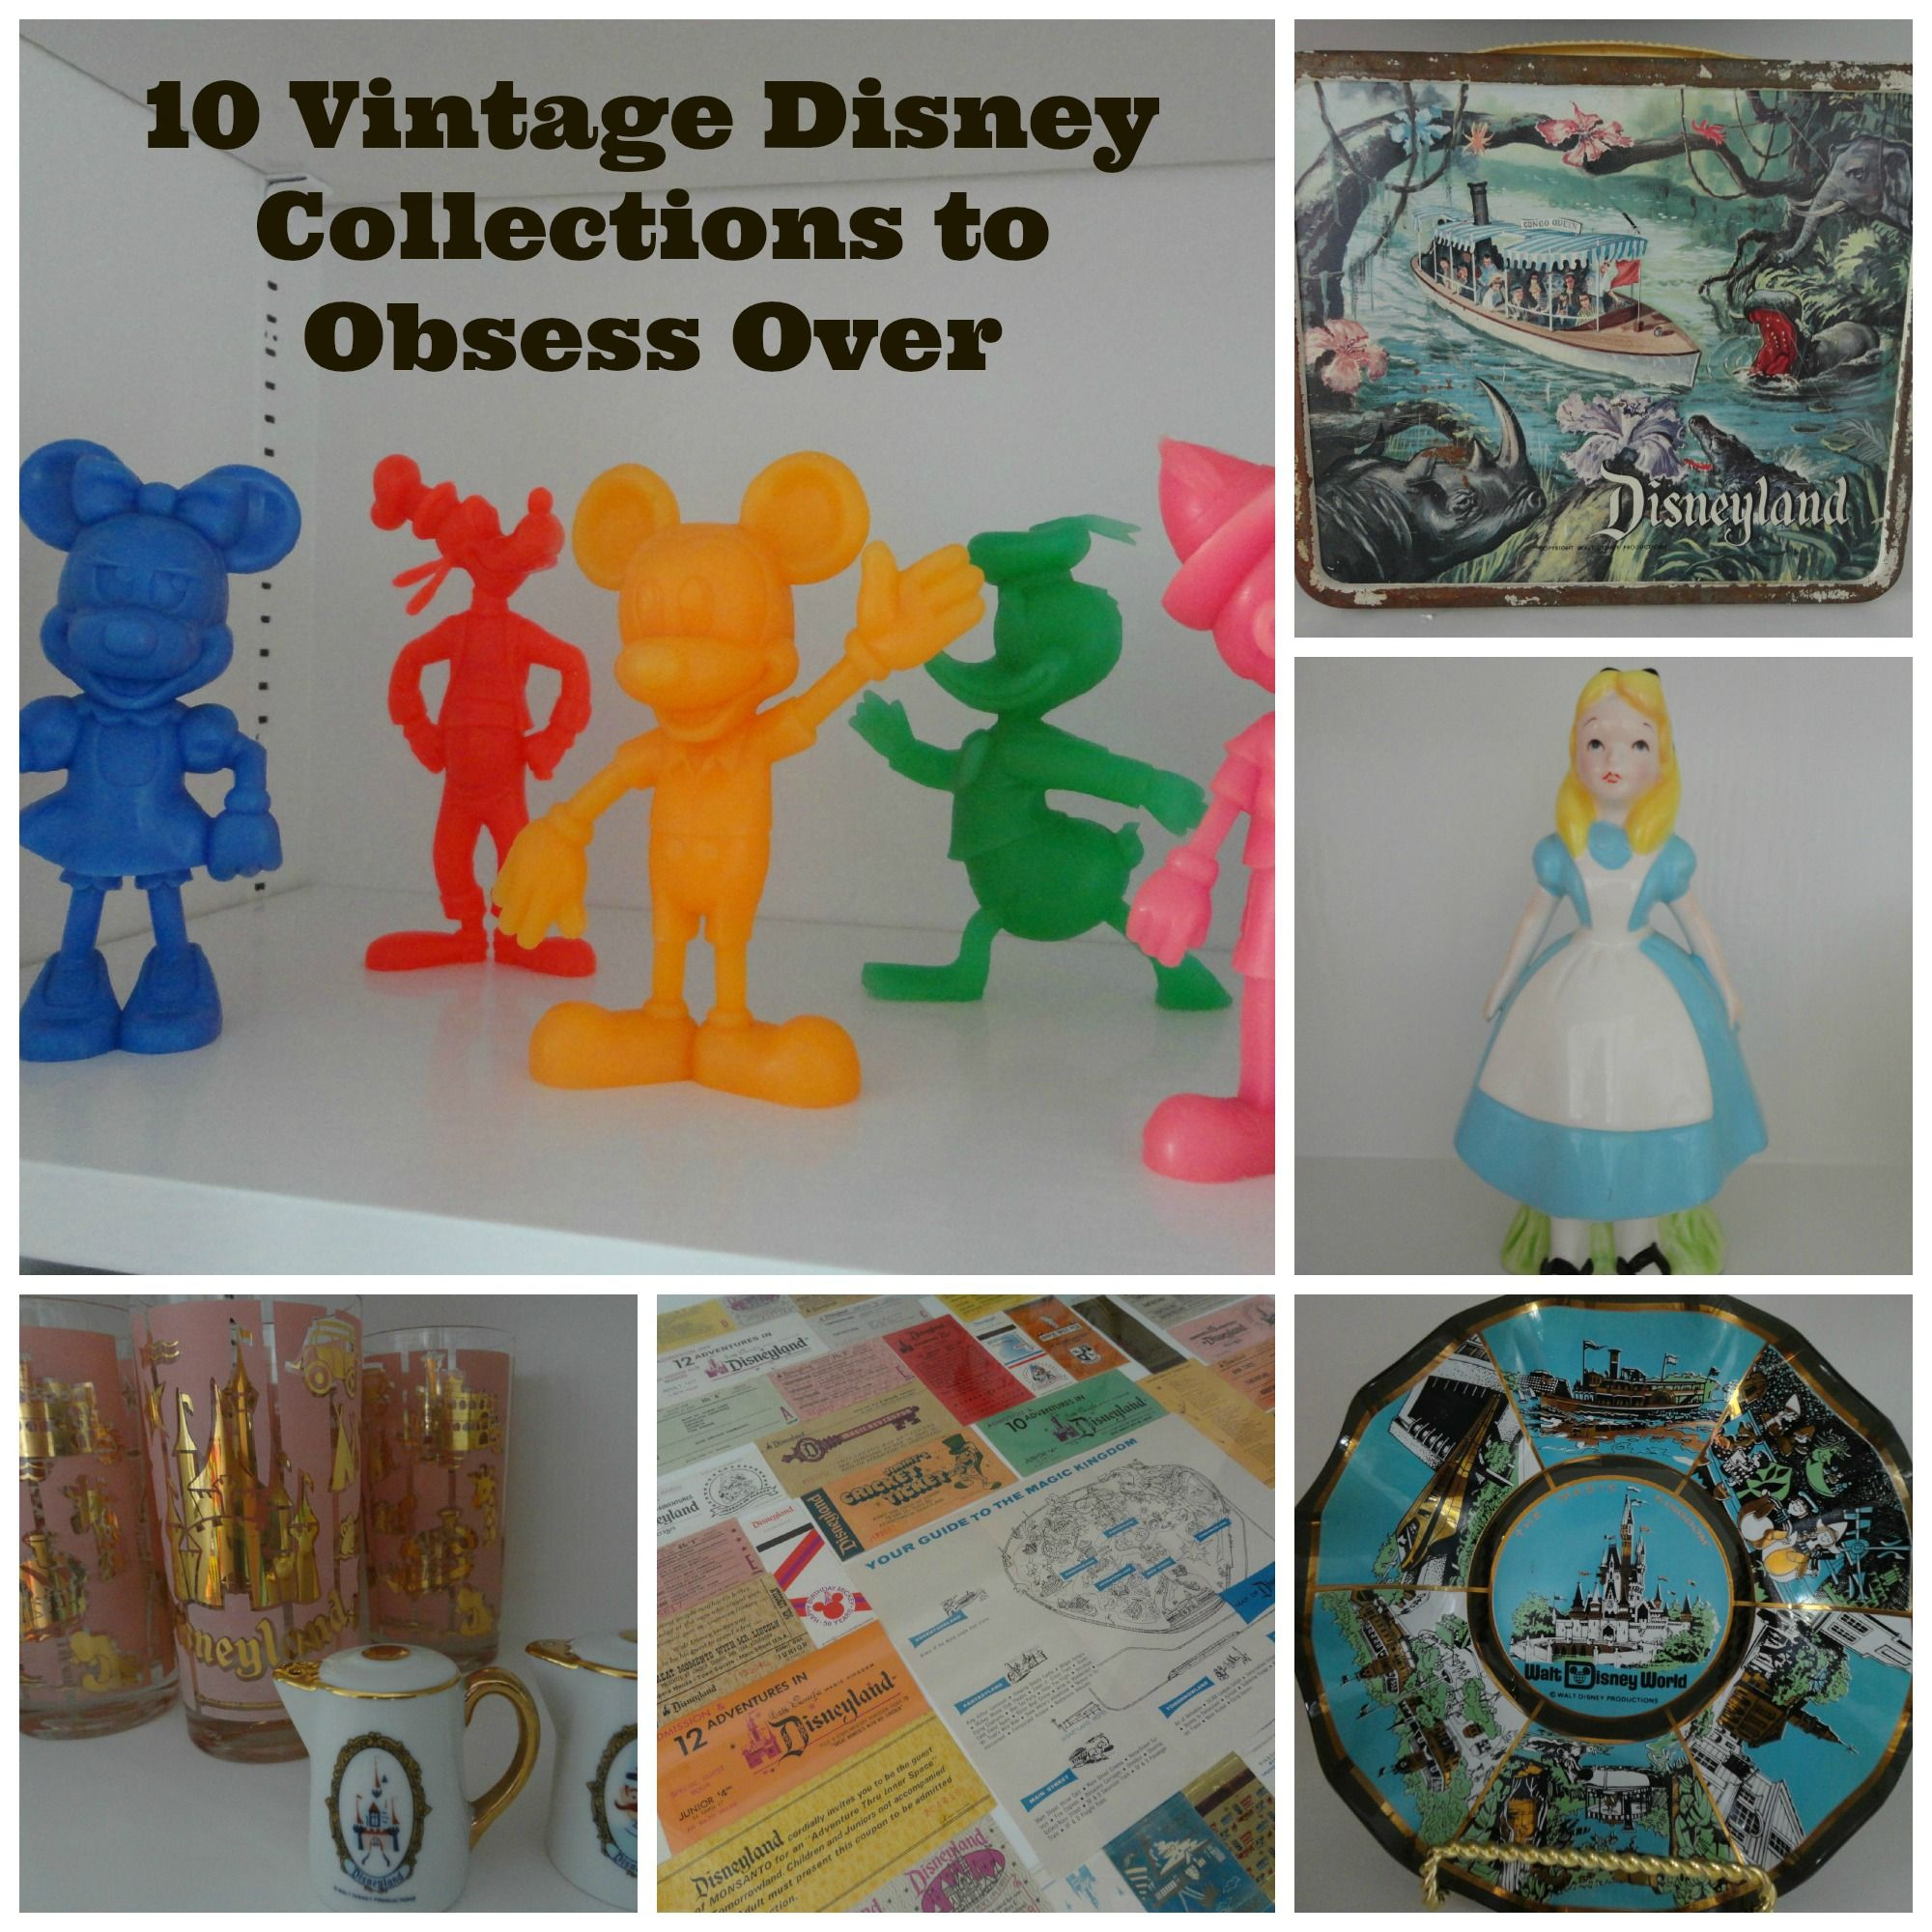 Disney Items Can Be Found In Just About Every Antique Store You Step Foot Into Heres 10 Vintage Collections That Will Have Obsessed No Time